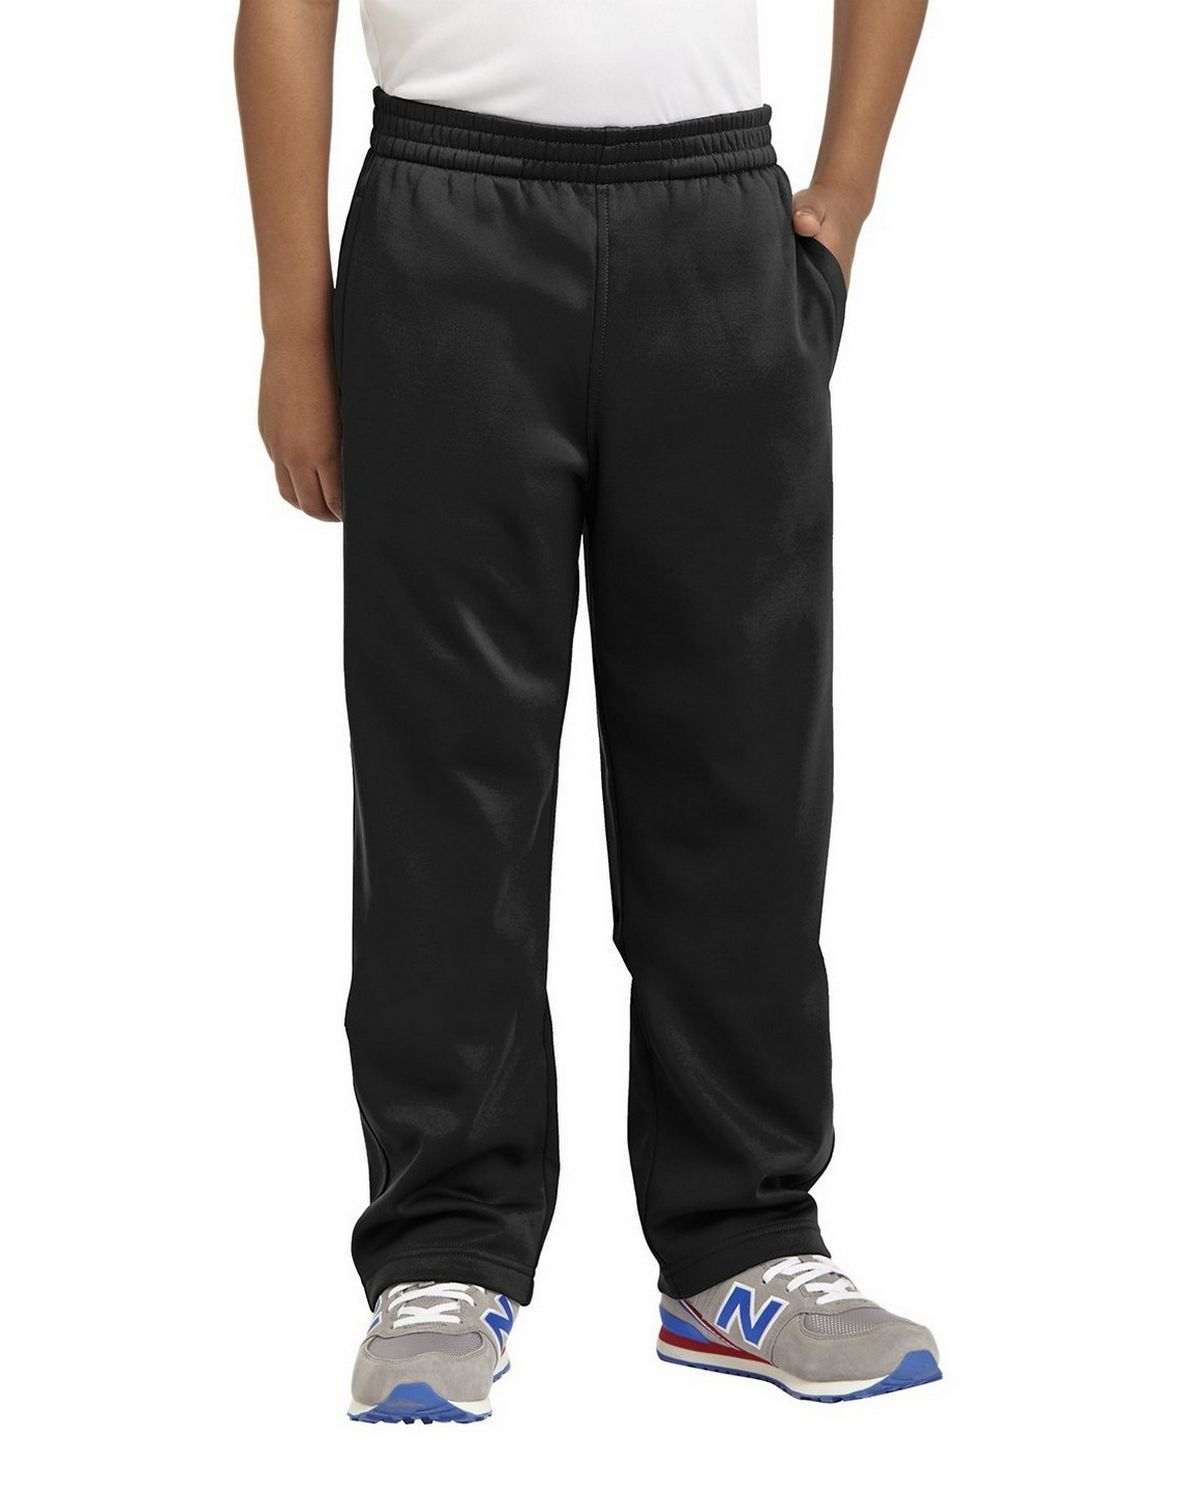 North End Girls Athletic Pants Black 68627 Large